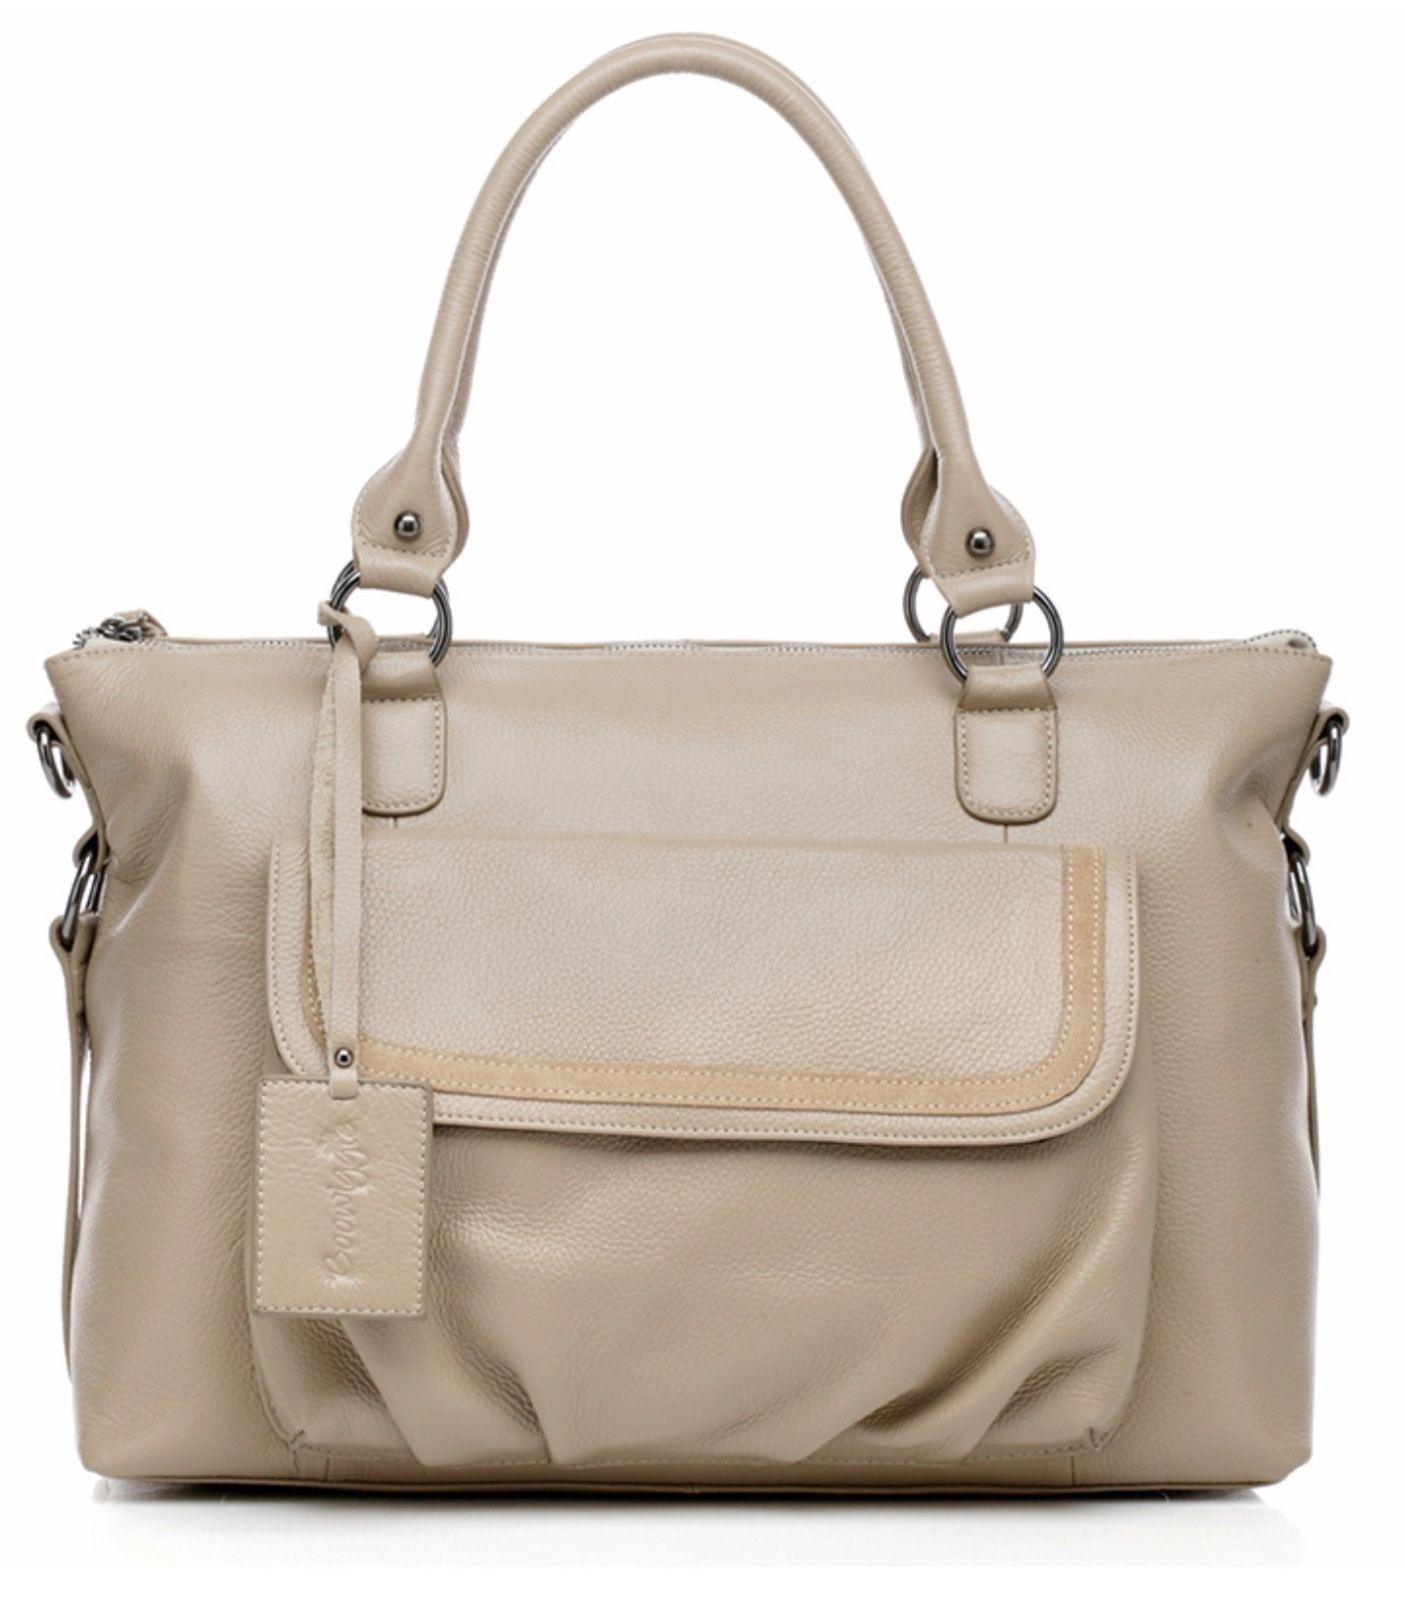 New Beige Light Brown Pebbled Italian Leather Diaper Bag Mommy Baby Bag